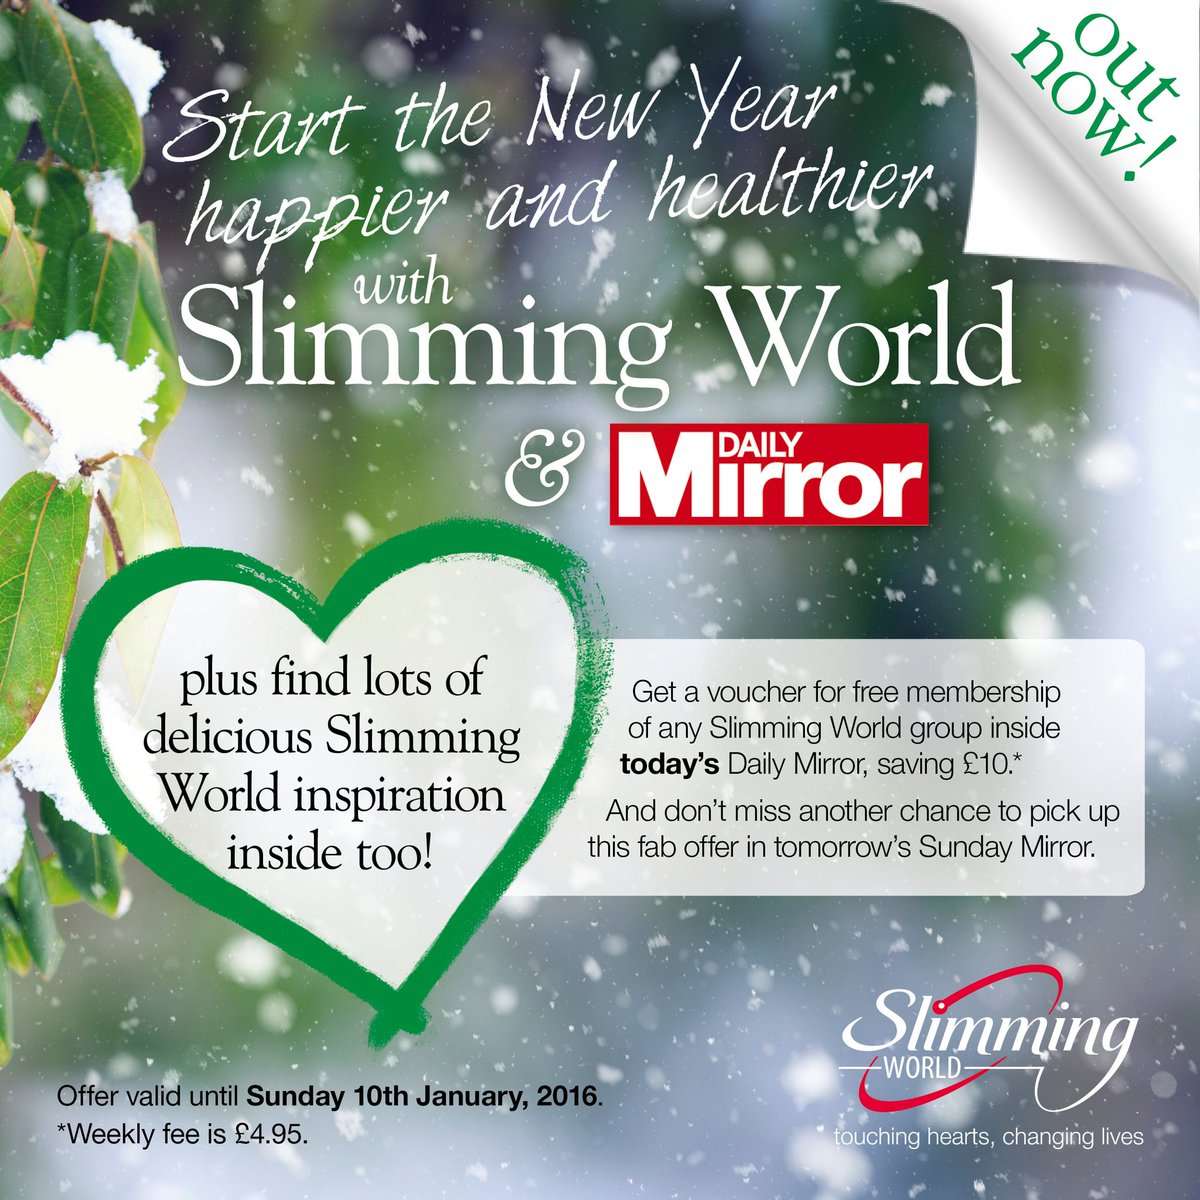 Slimming world on twitter great 39 happy new year Slimming world my account